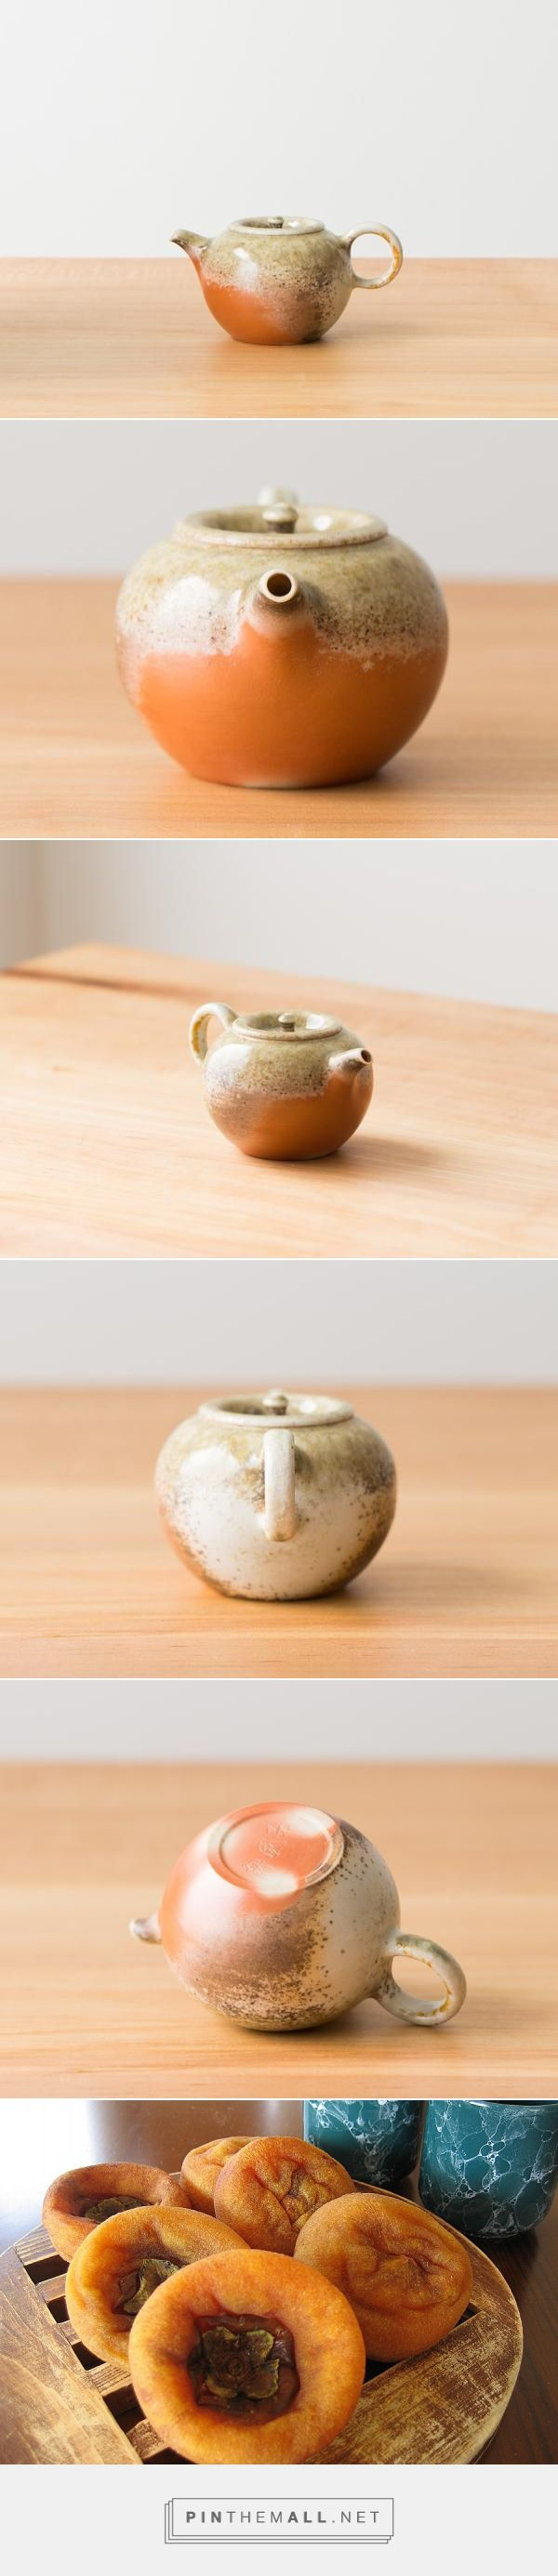 "Porcelain Study, Robin – Song Tea & Ceramics  Reminds me of a 柿餅, Chinese dried persimmon.  130ml  |  55mm tall  |  70mm diameter  This ""porcelain study"" pot is one of three pieces crafted in fine Japanese porcelain. It exhibits a grace and delicacy that stands in stark contrast to the rusticity of its wood-fired origins.  We call this pot Robin, for the brilliant orange flame flash on the breast of the pot. A unique inset lid and finial ties the lines together. To achieve the unique..."